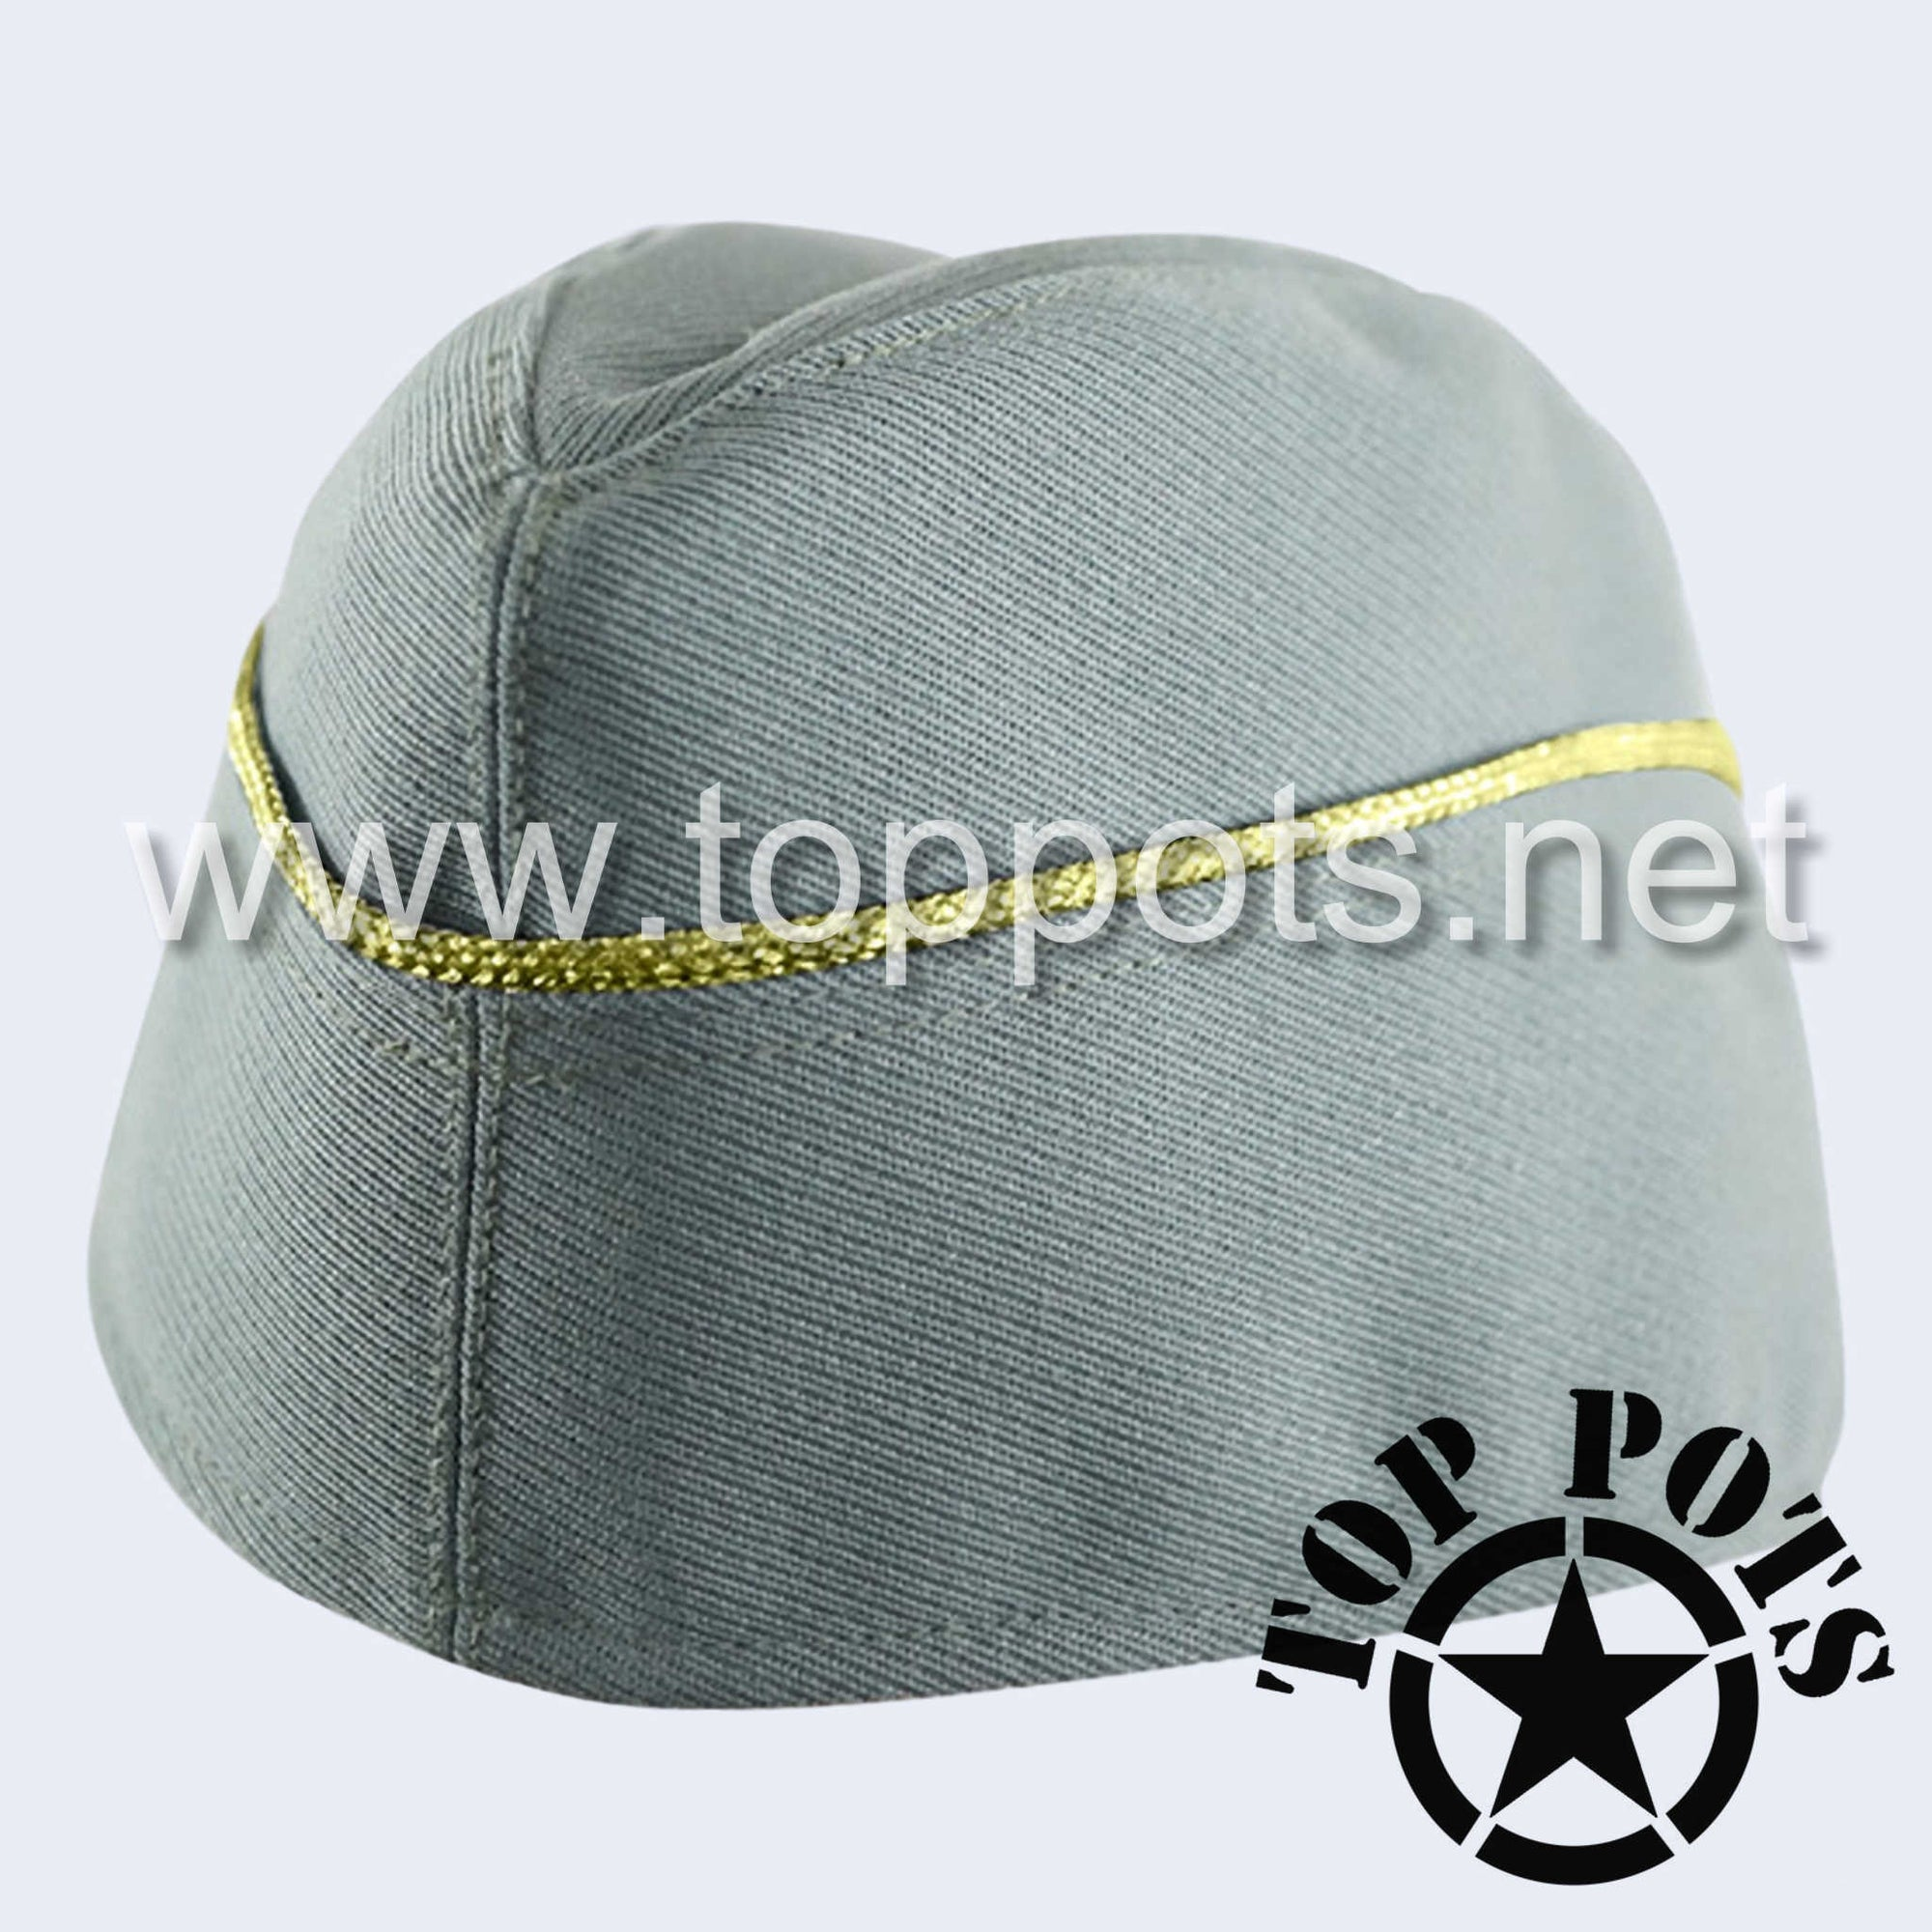 WWII German Army M1940 Heer Wehrmacht Officer Uniform Overseas Side Cap Field Grey Gabardine - General